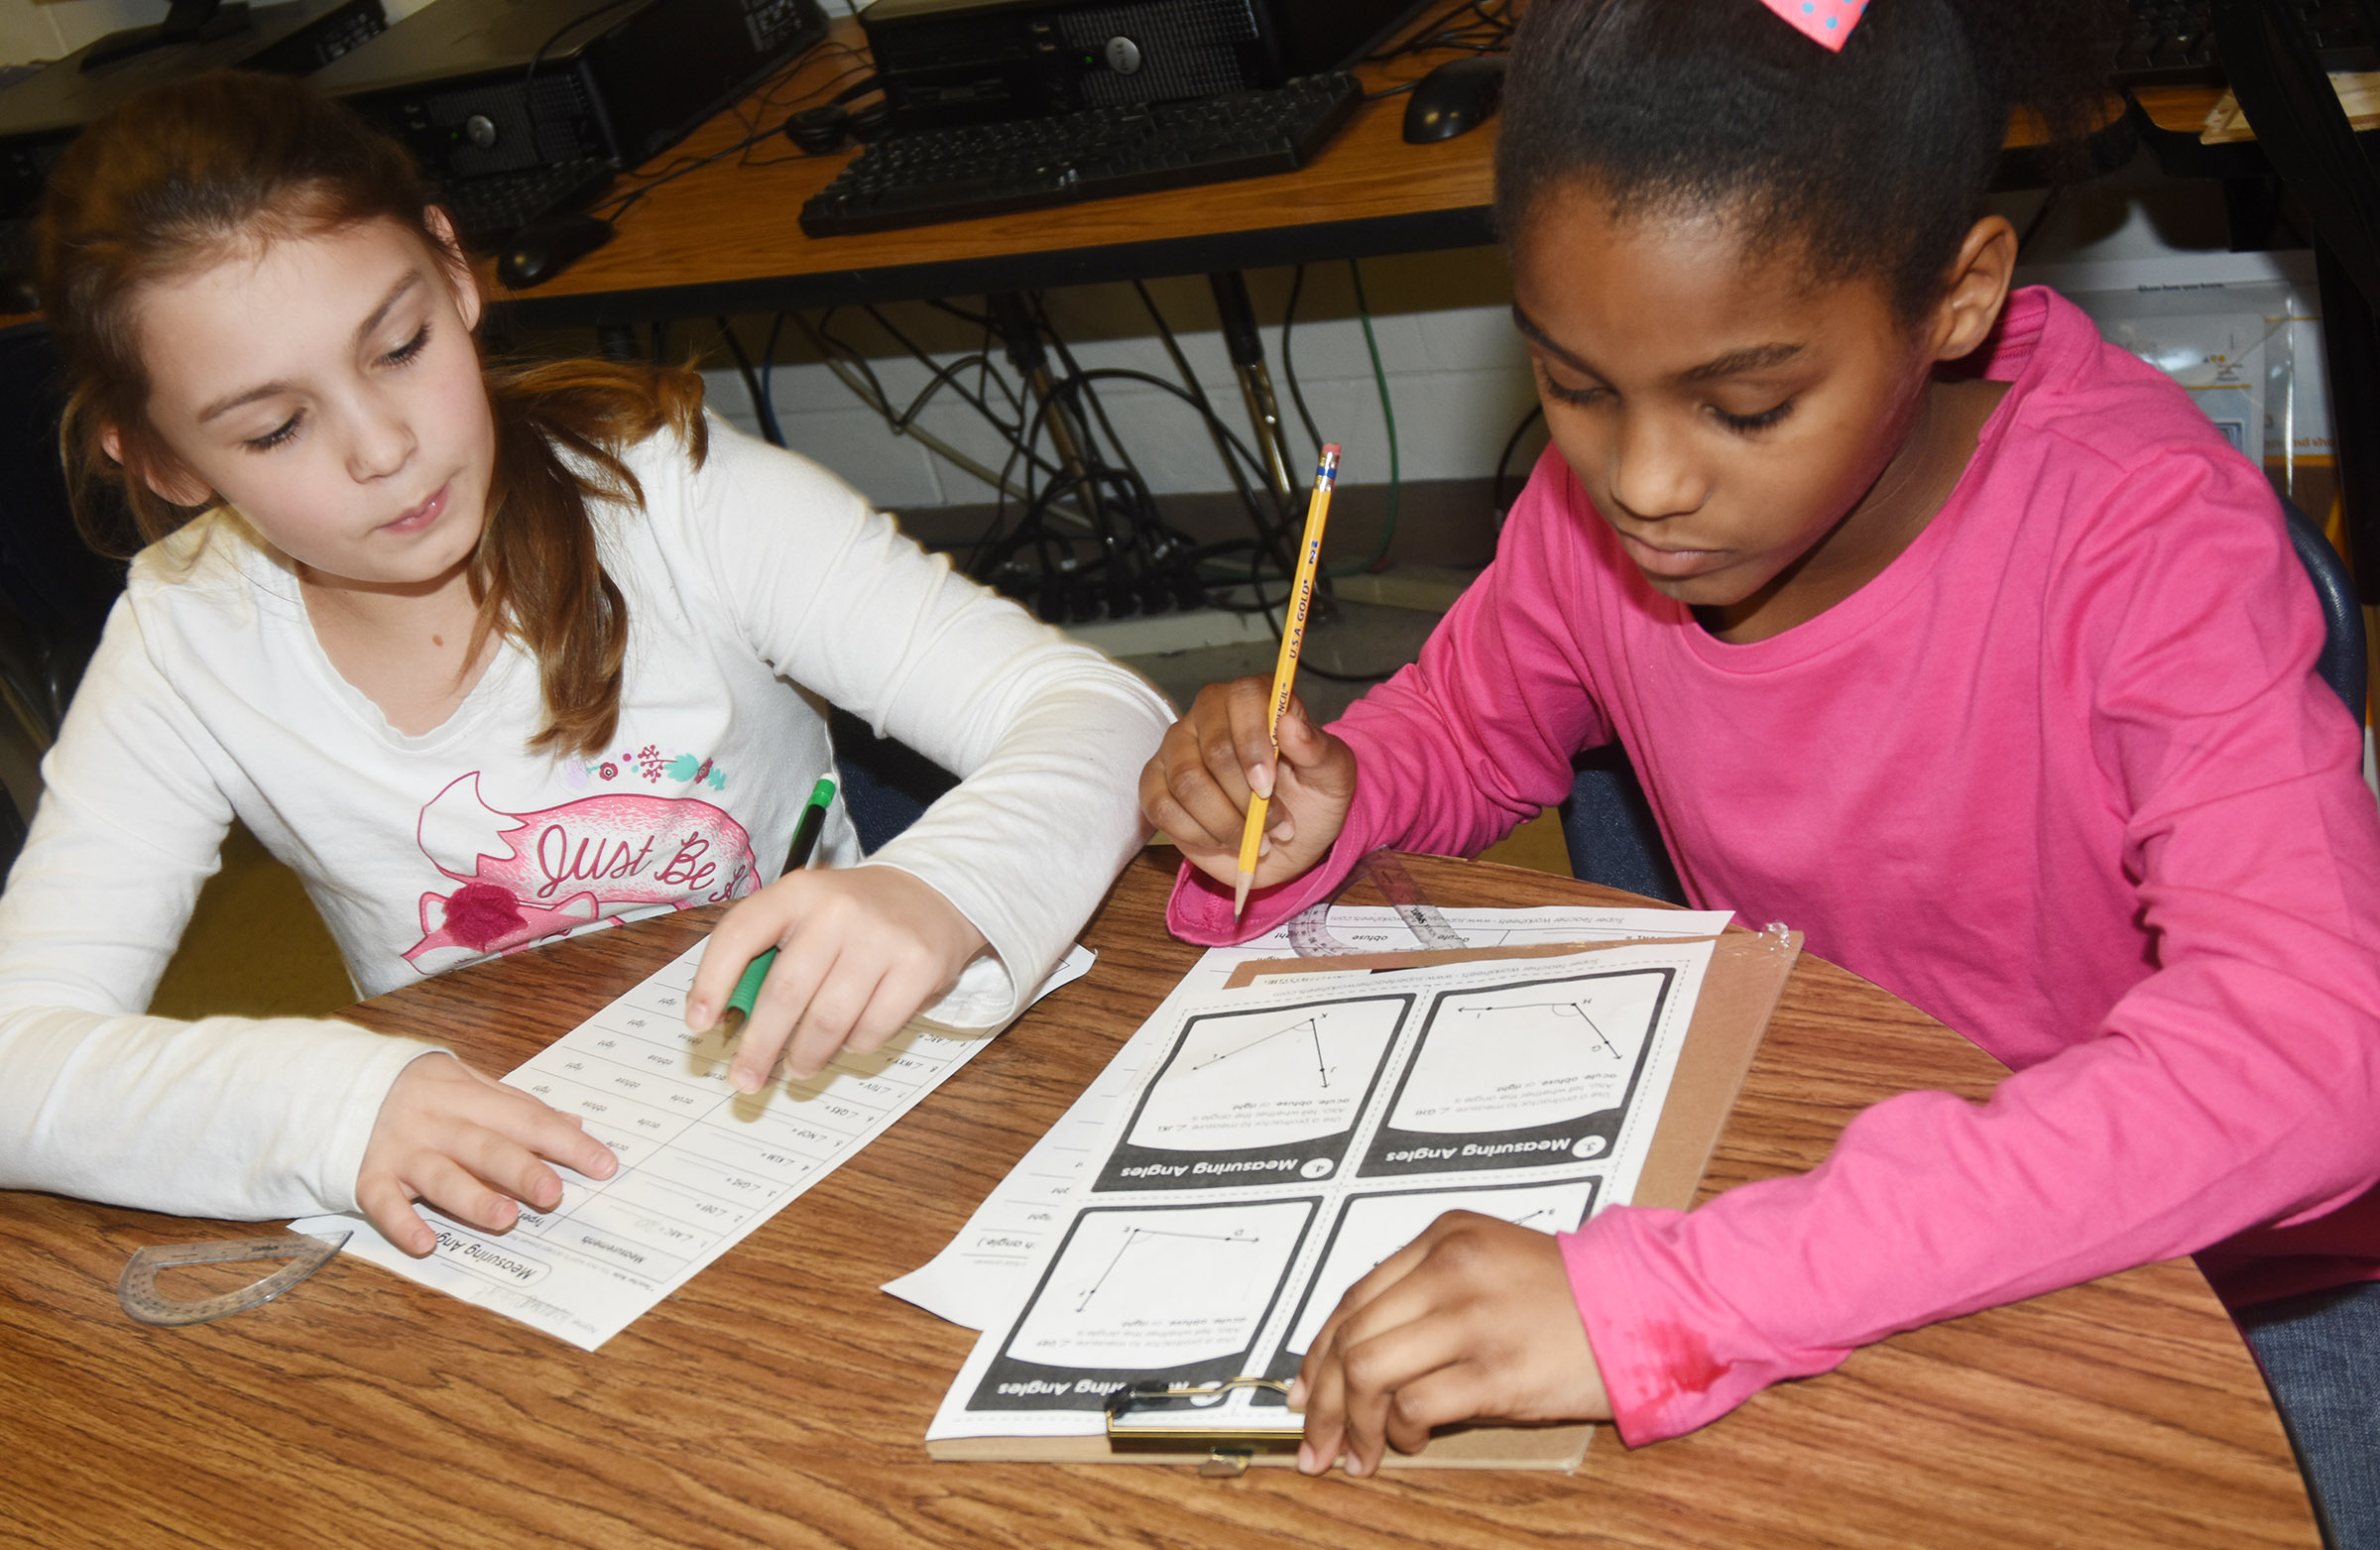 CES fourth-graders Kealey Mann, at left, and Maliyah Harris work together to measure angles.